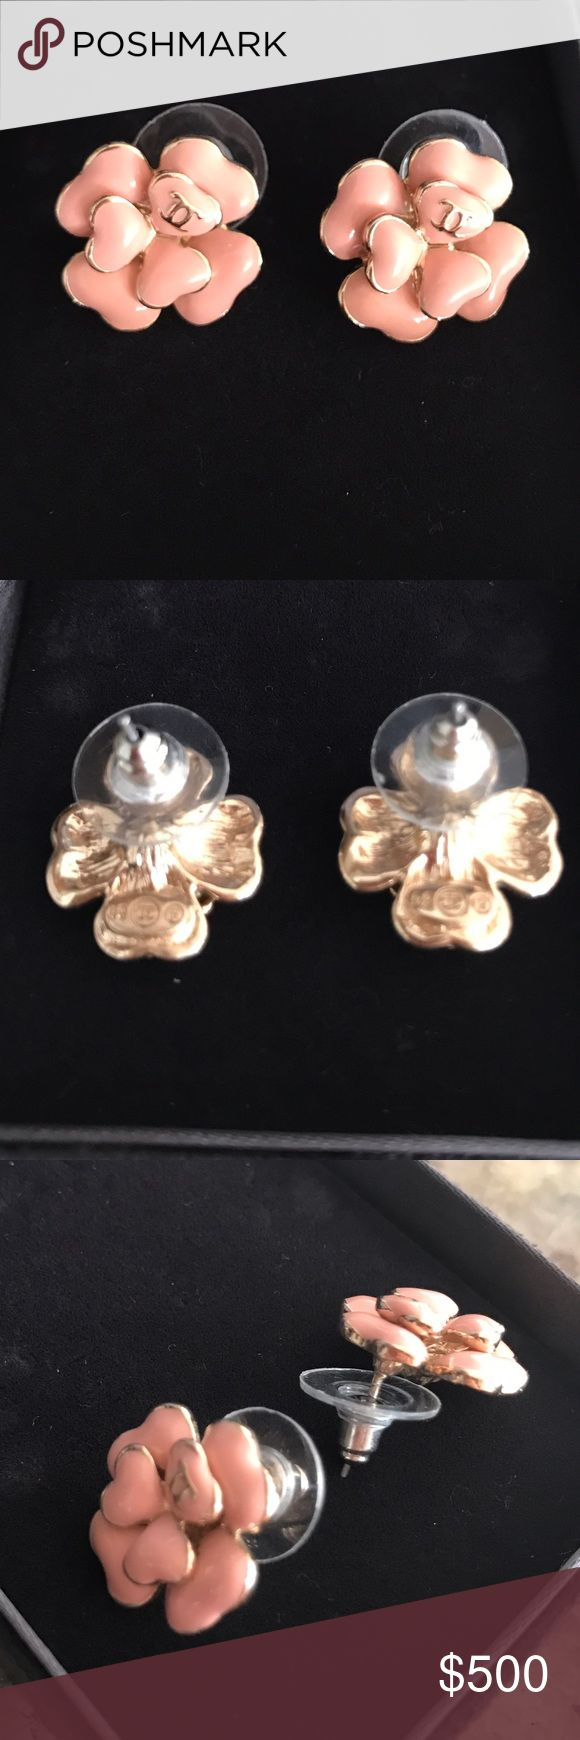 """*Sale* Chanel Rose Petals Earrings Chanel Rose Pate Earrings by Maison Gripoix. Poured glass in a pale rose is used for these feminine, floral earrings with multi layered petals. 1.5"""" across x .75"""" high. Excellent condition. CHANEL Jewelry Earrings"""